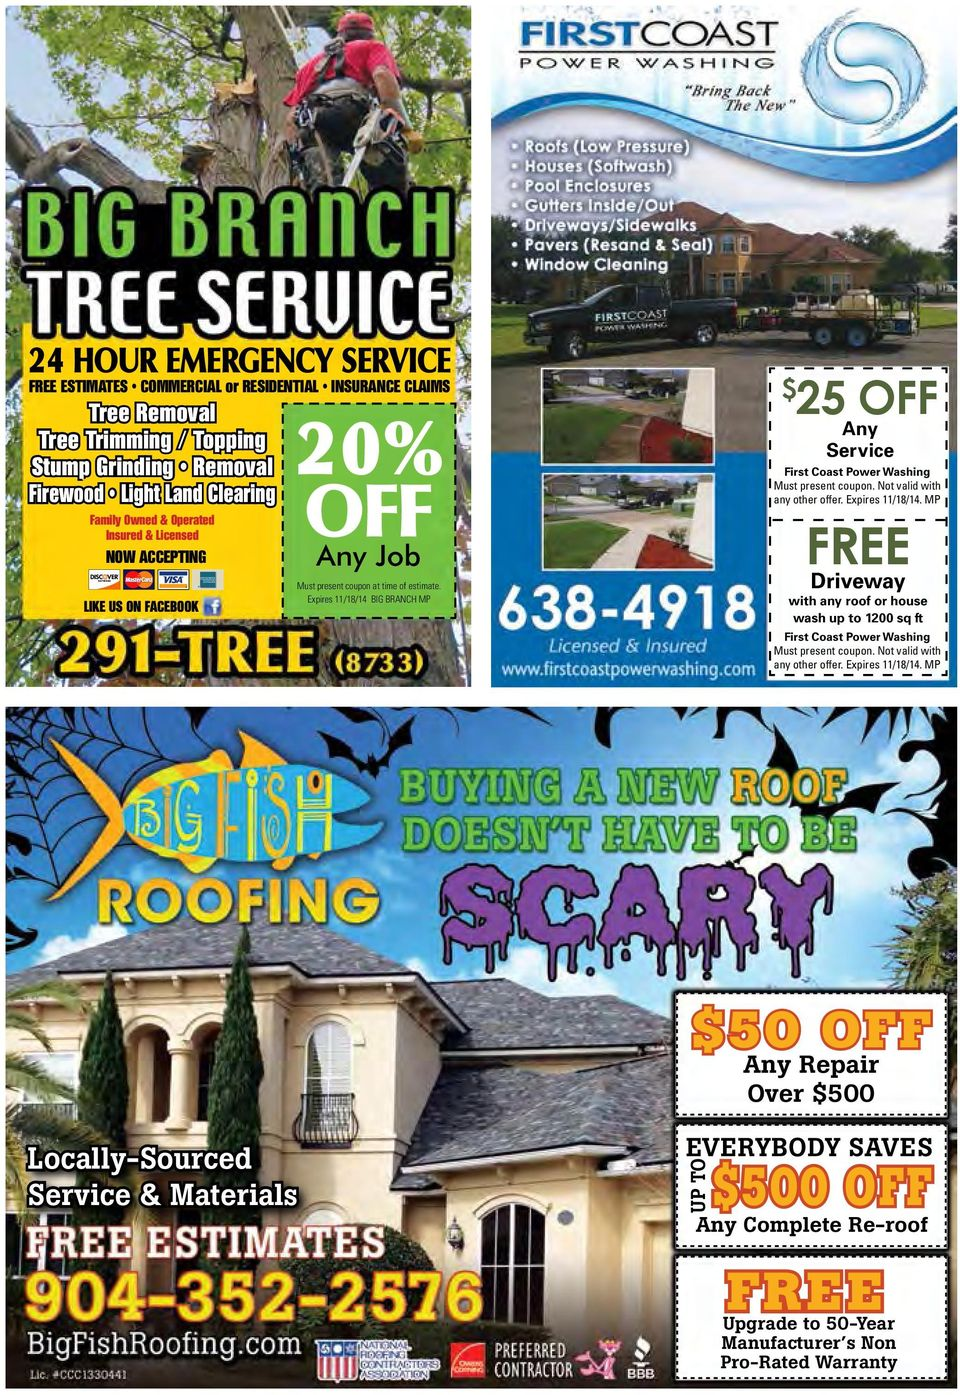 Expires 11/18/14 BIG BRANCH MP 25 OFF Any Service First Coast Power Washing Must present coupon. Not valid with any other offer. Expires 11/18/14.